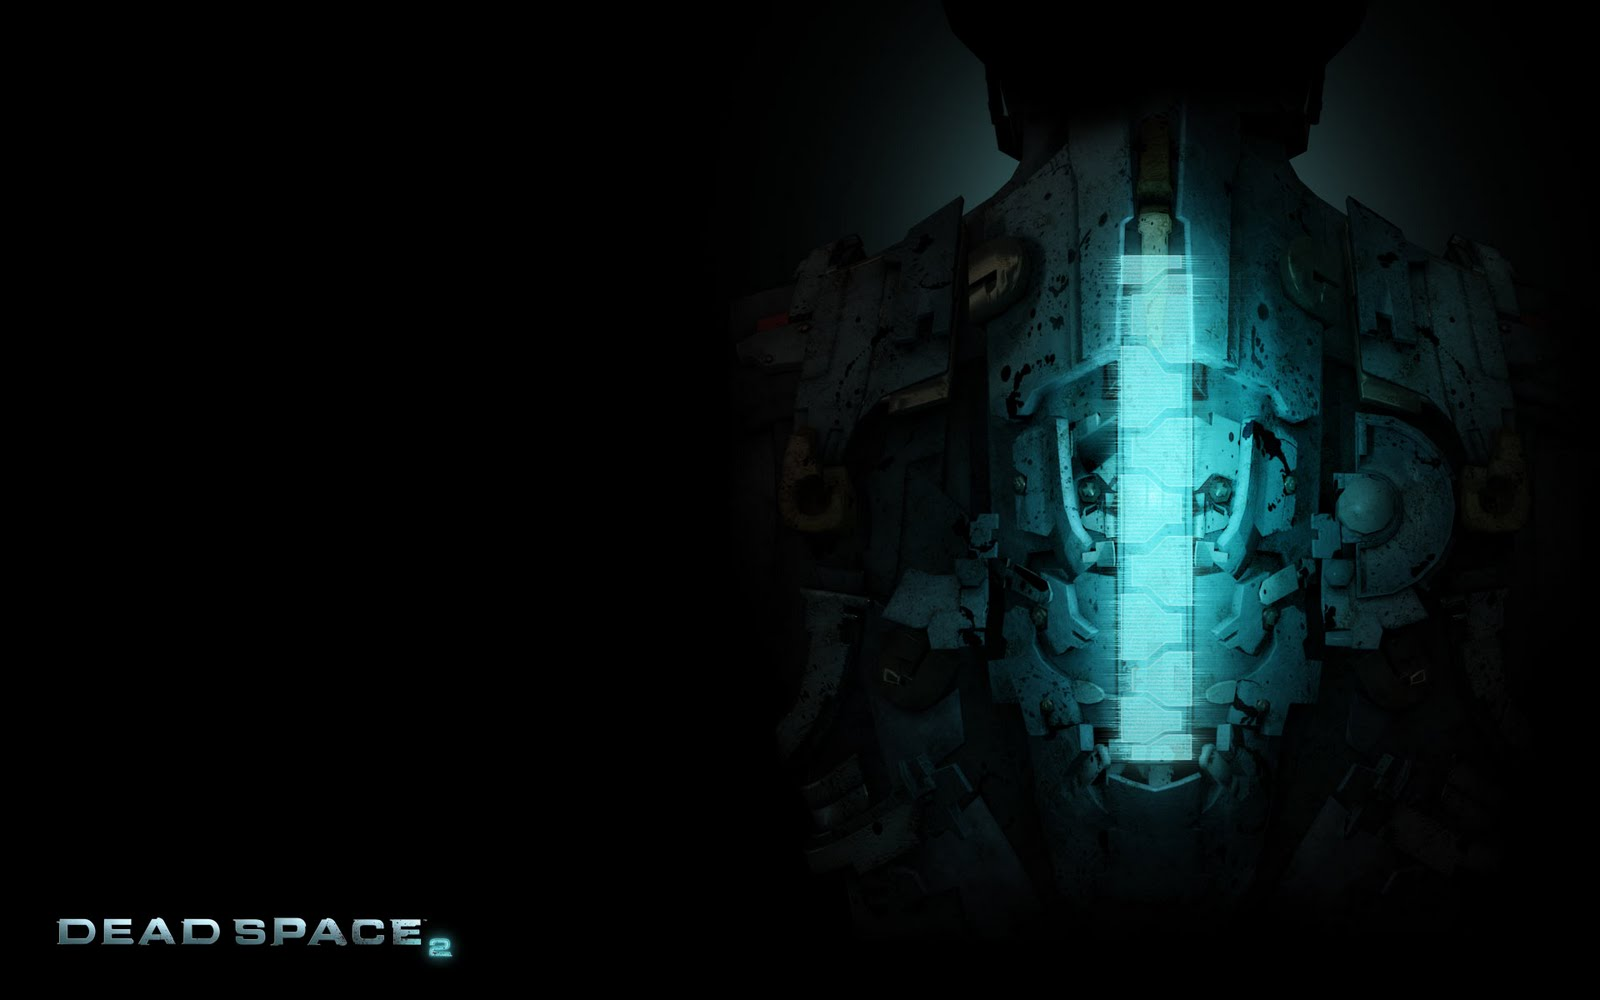 Personal gaming four dead space 2 hd wallpapers - Dead space 3 wallpaper 1080p ...